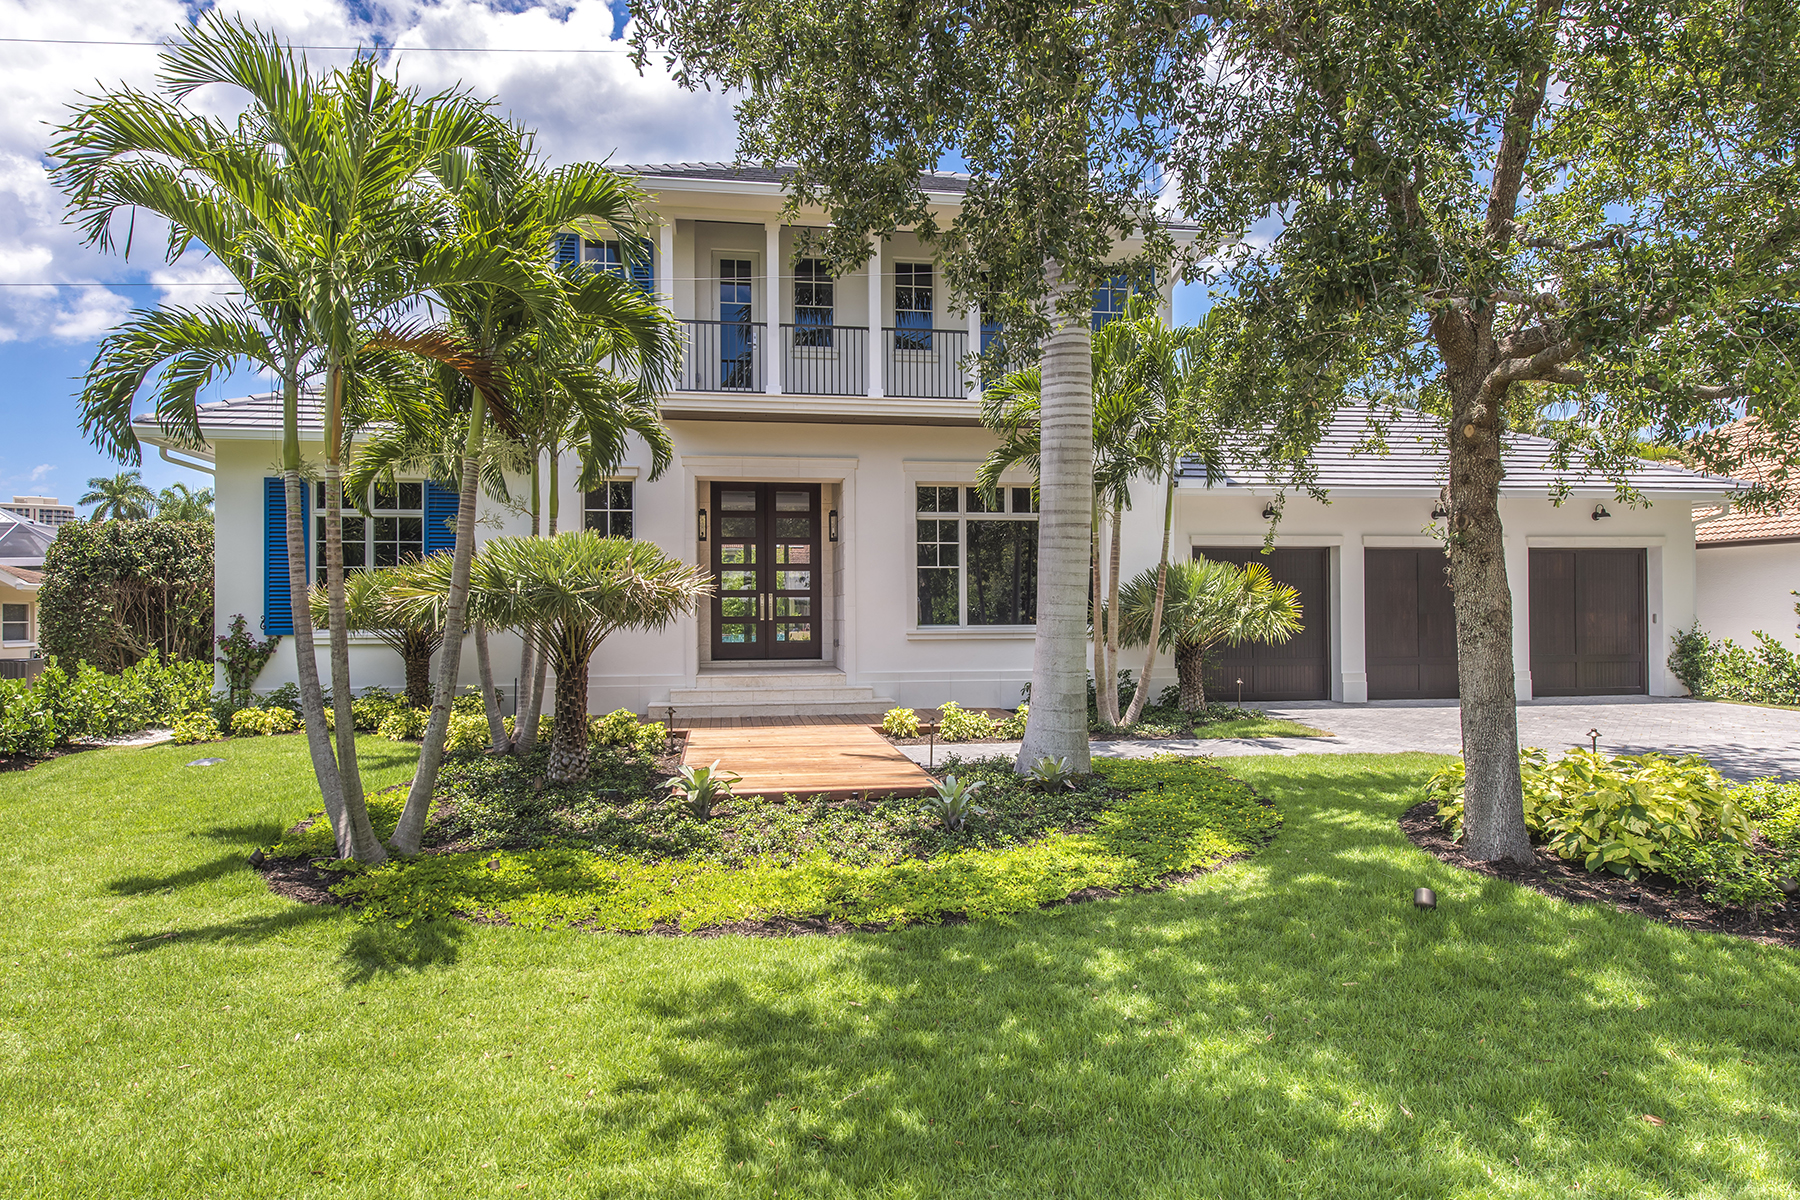 Single Family Home for Sale at Seagate 5139 Sand Dollar Ln Naples, Florida, 34103 United States